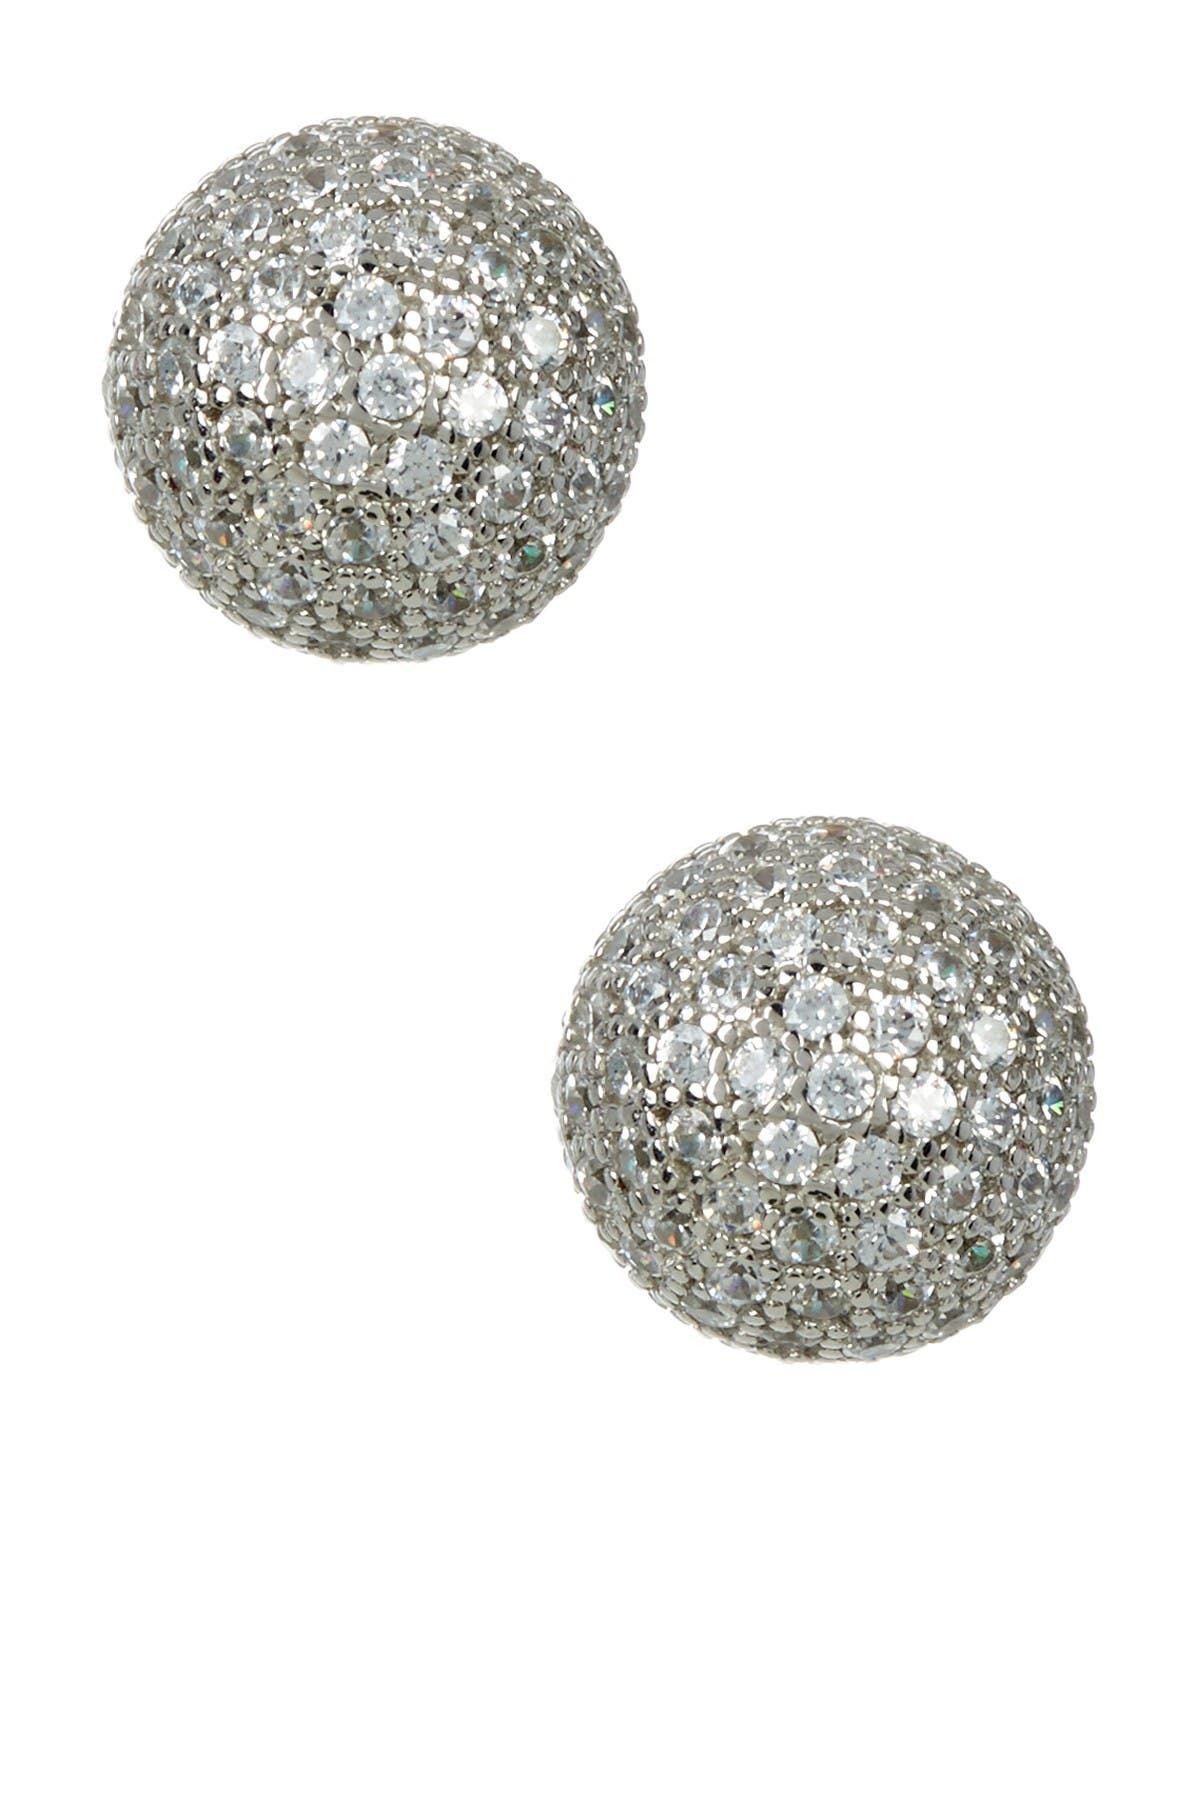 Image of Suzy Levian Sterling Silver CZ Ball Stud Earrings